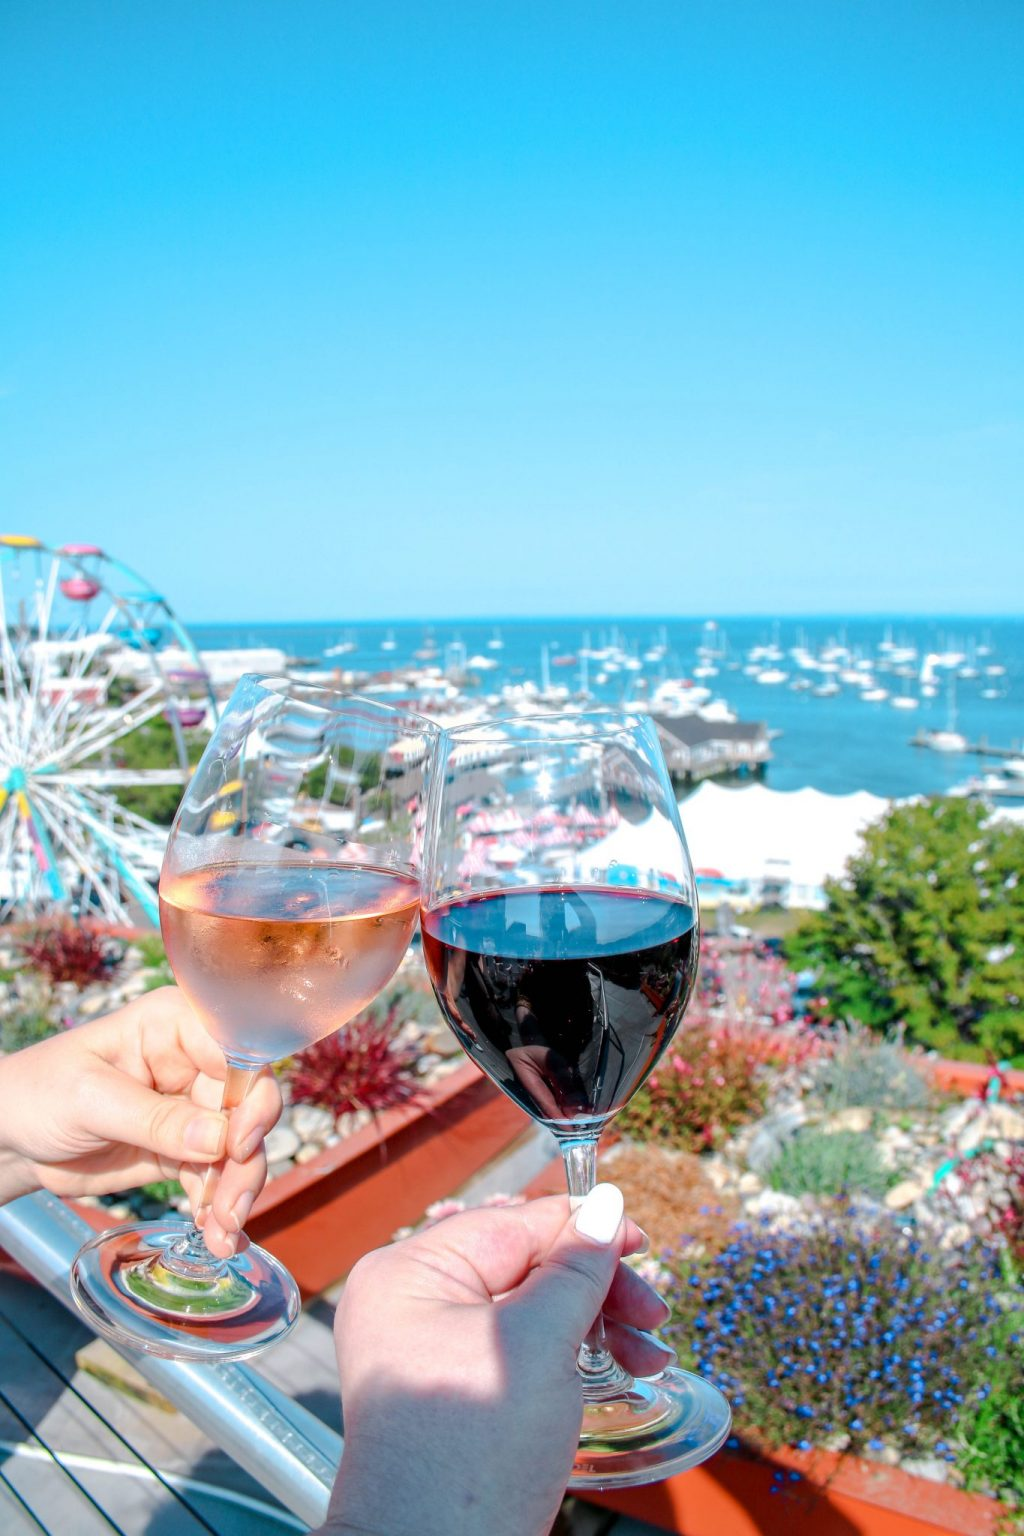 250 Maine Hotel offers a free wine hour each day.